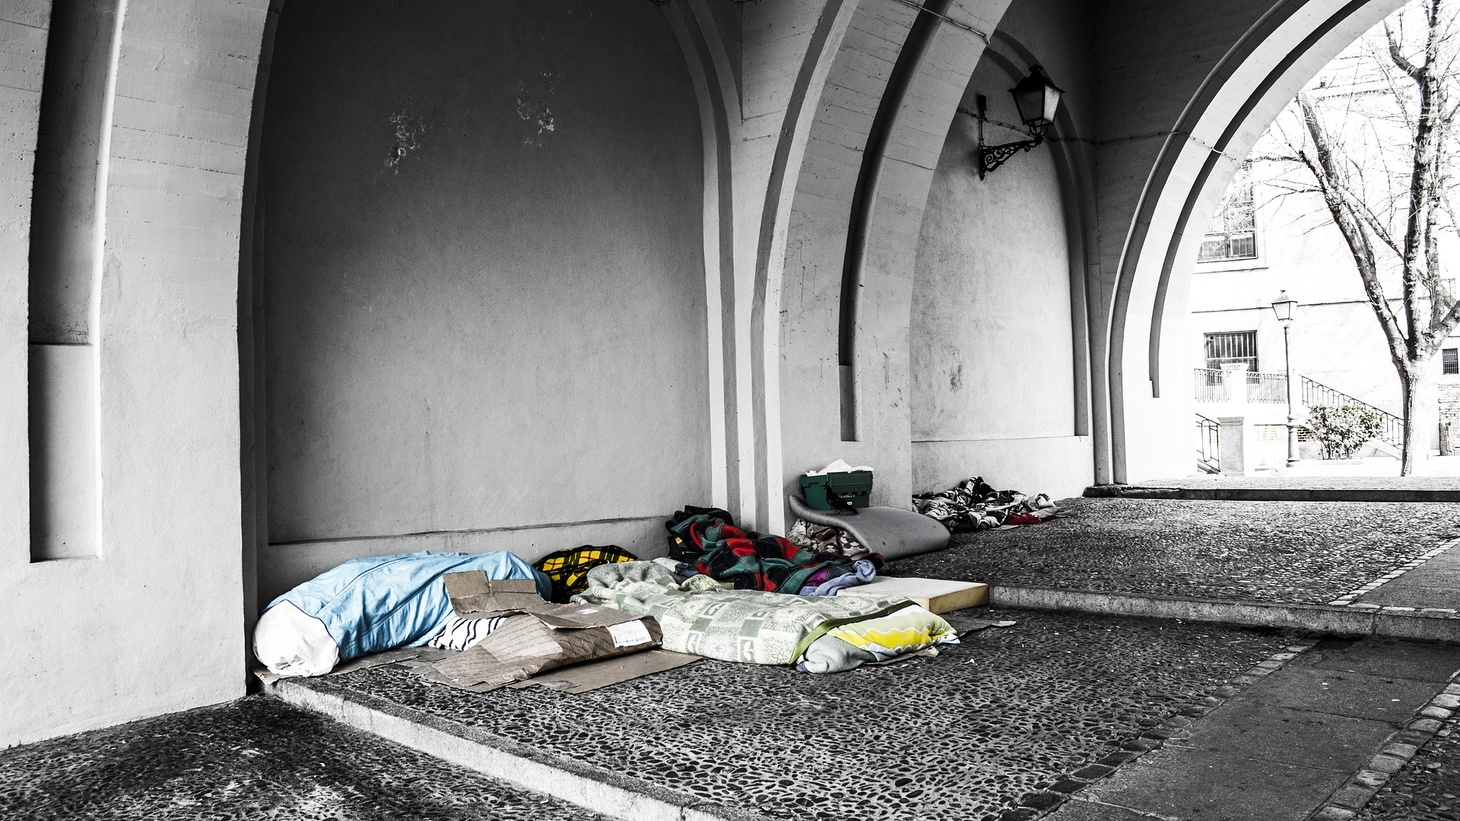 Signs of homelessness.